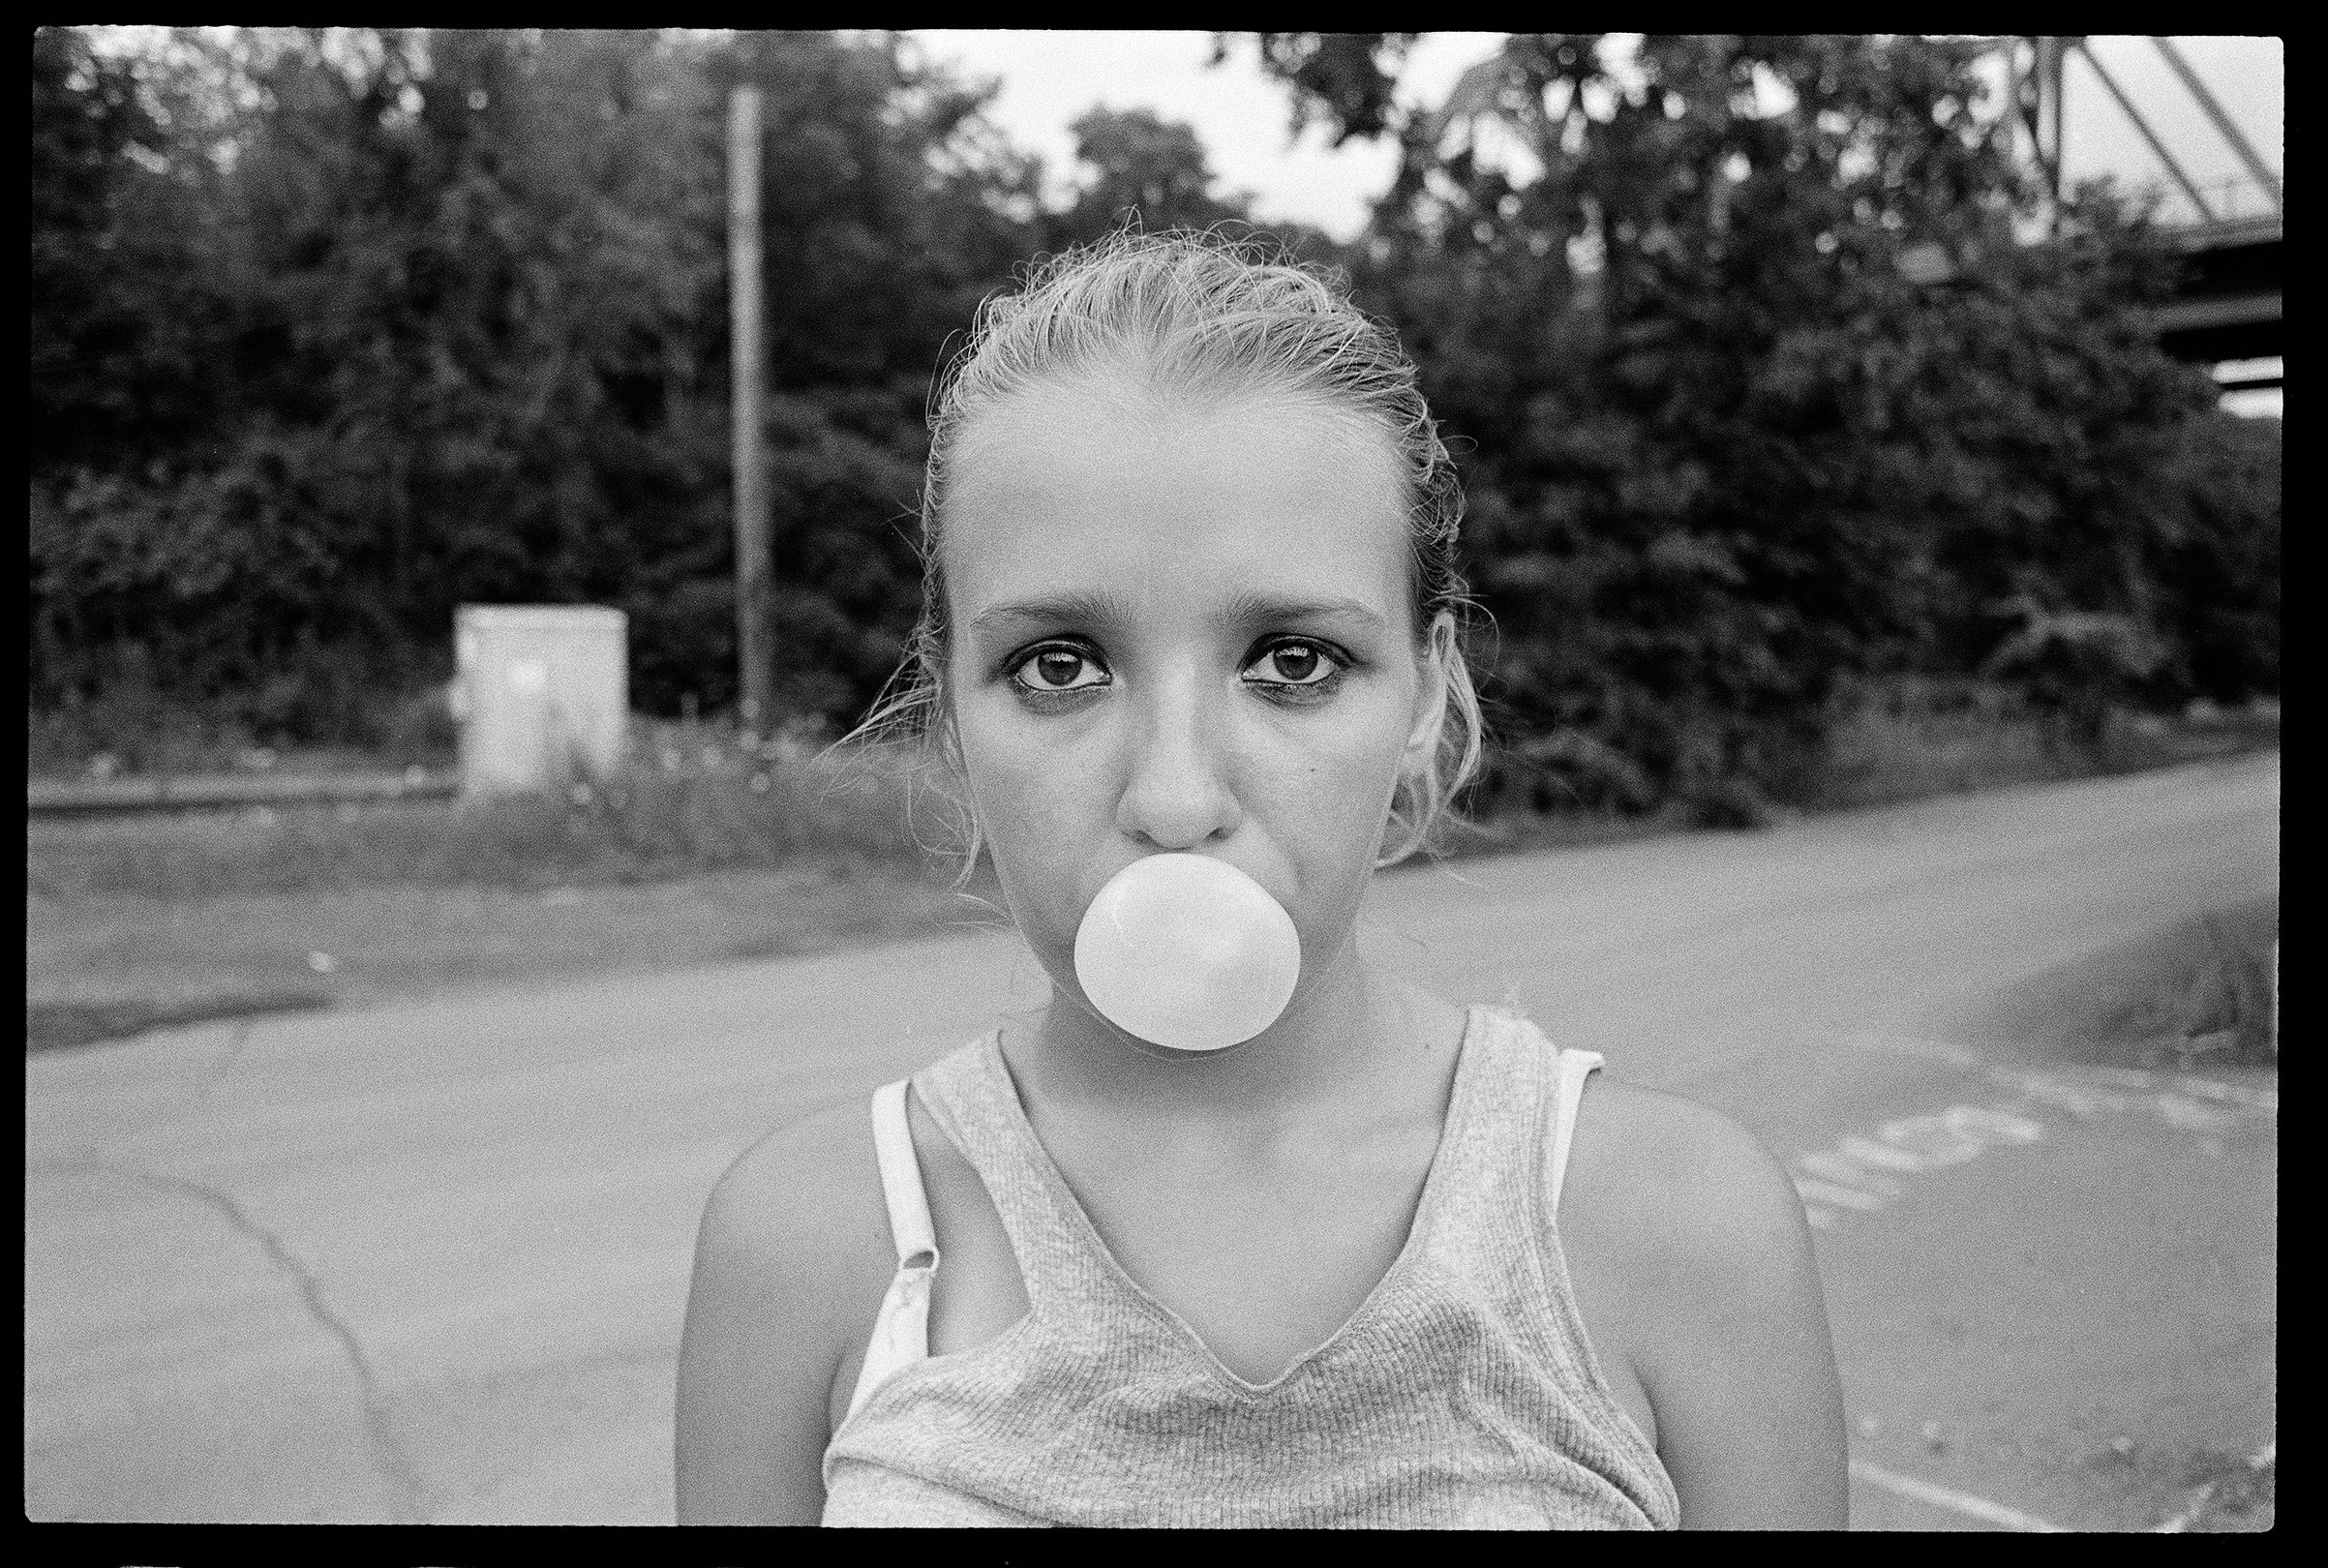 Teen blows bubble with gum